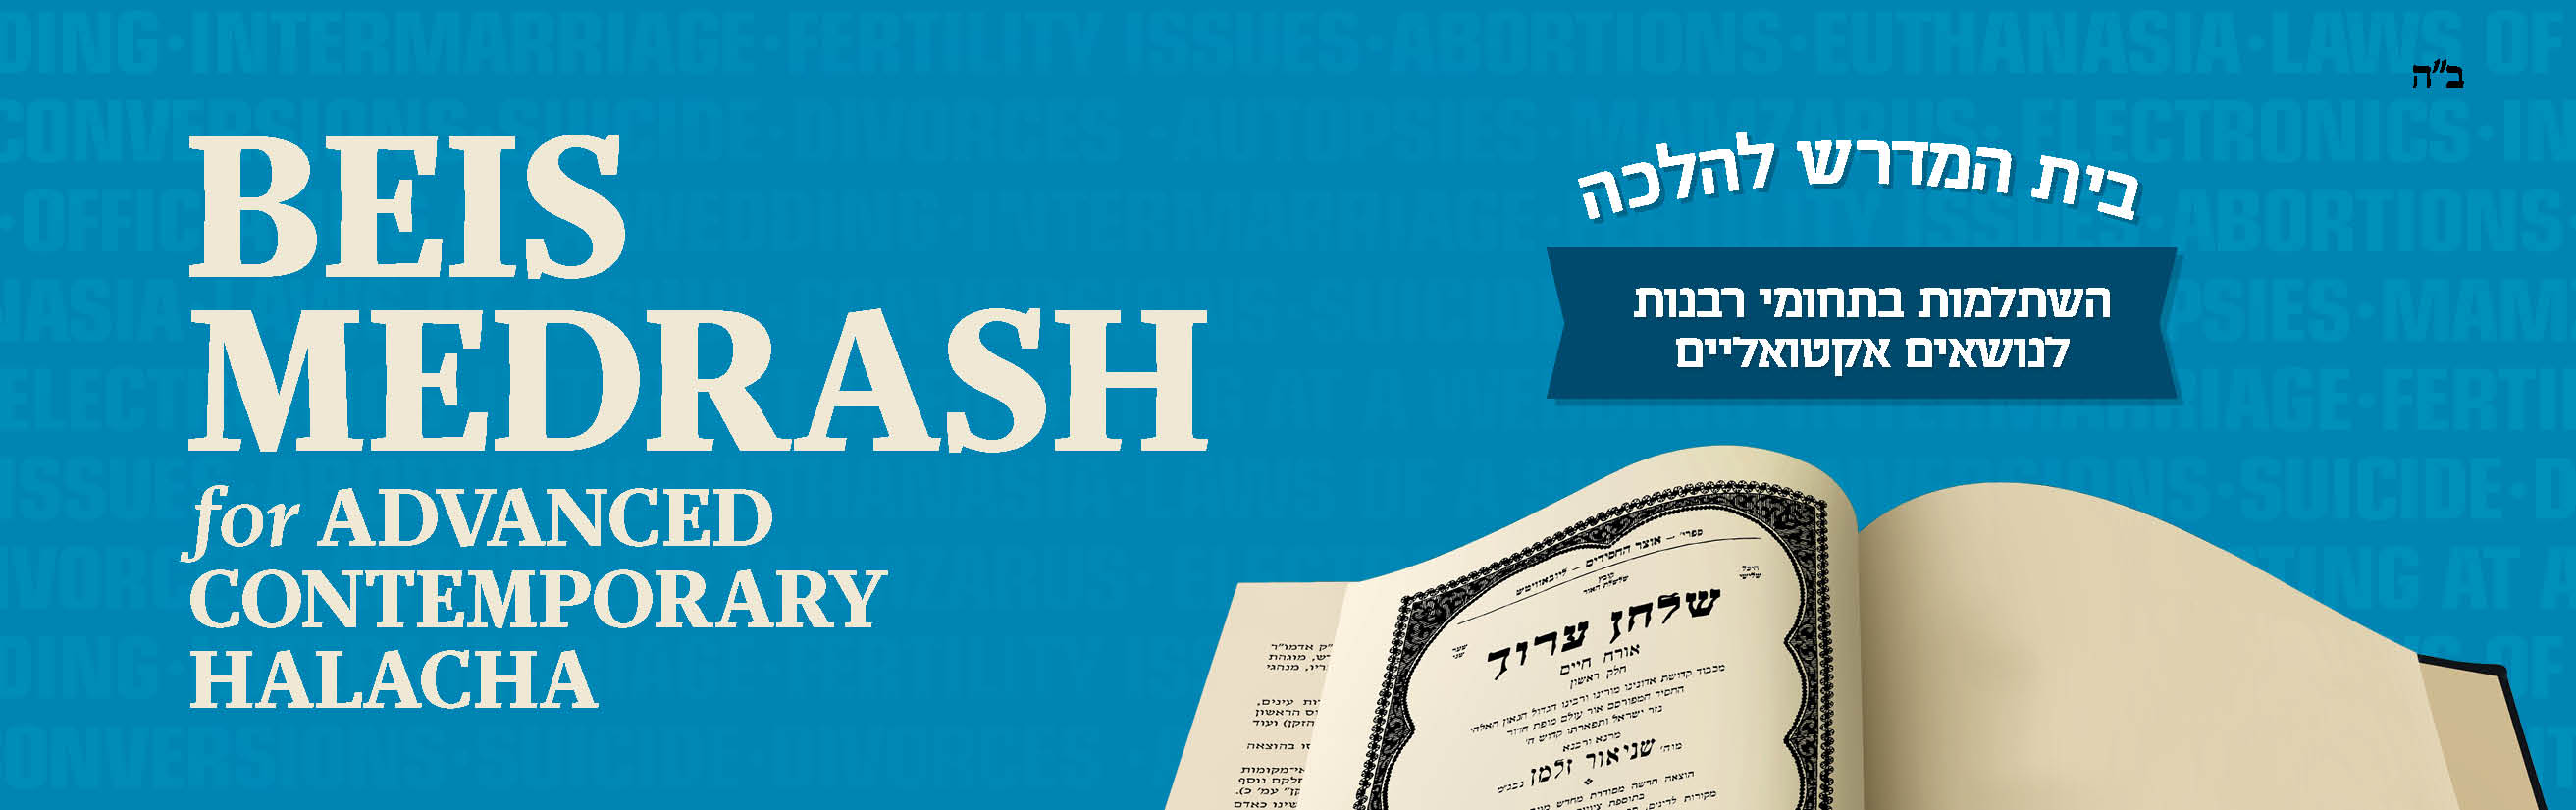 Beis Medrash for Advanced Contemporary Halacha